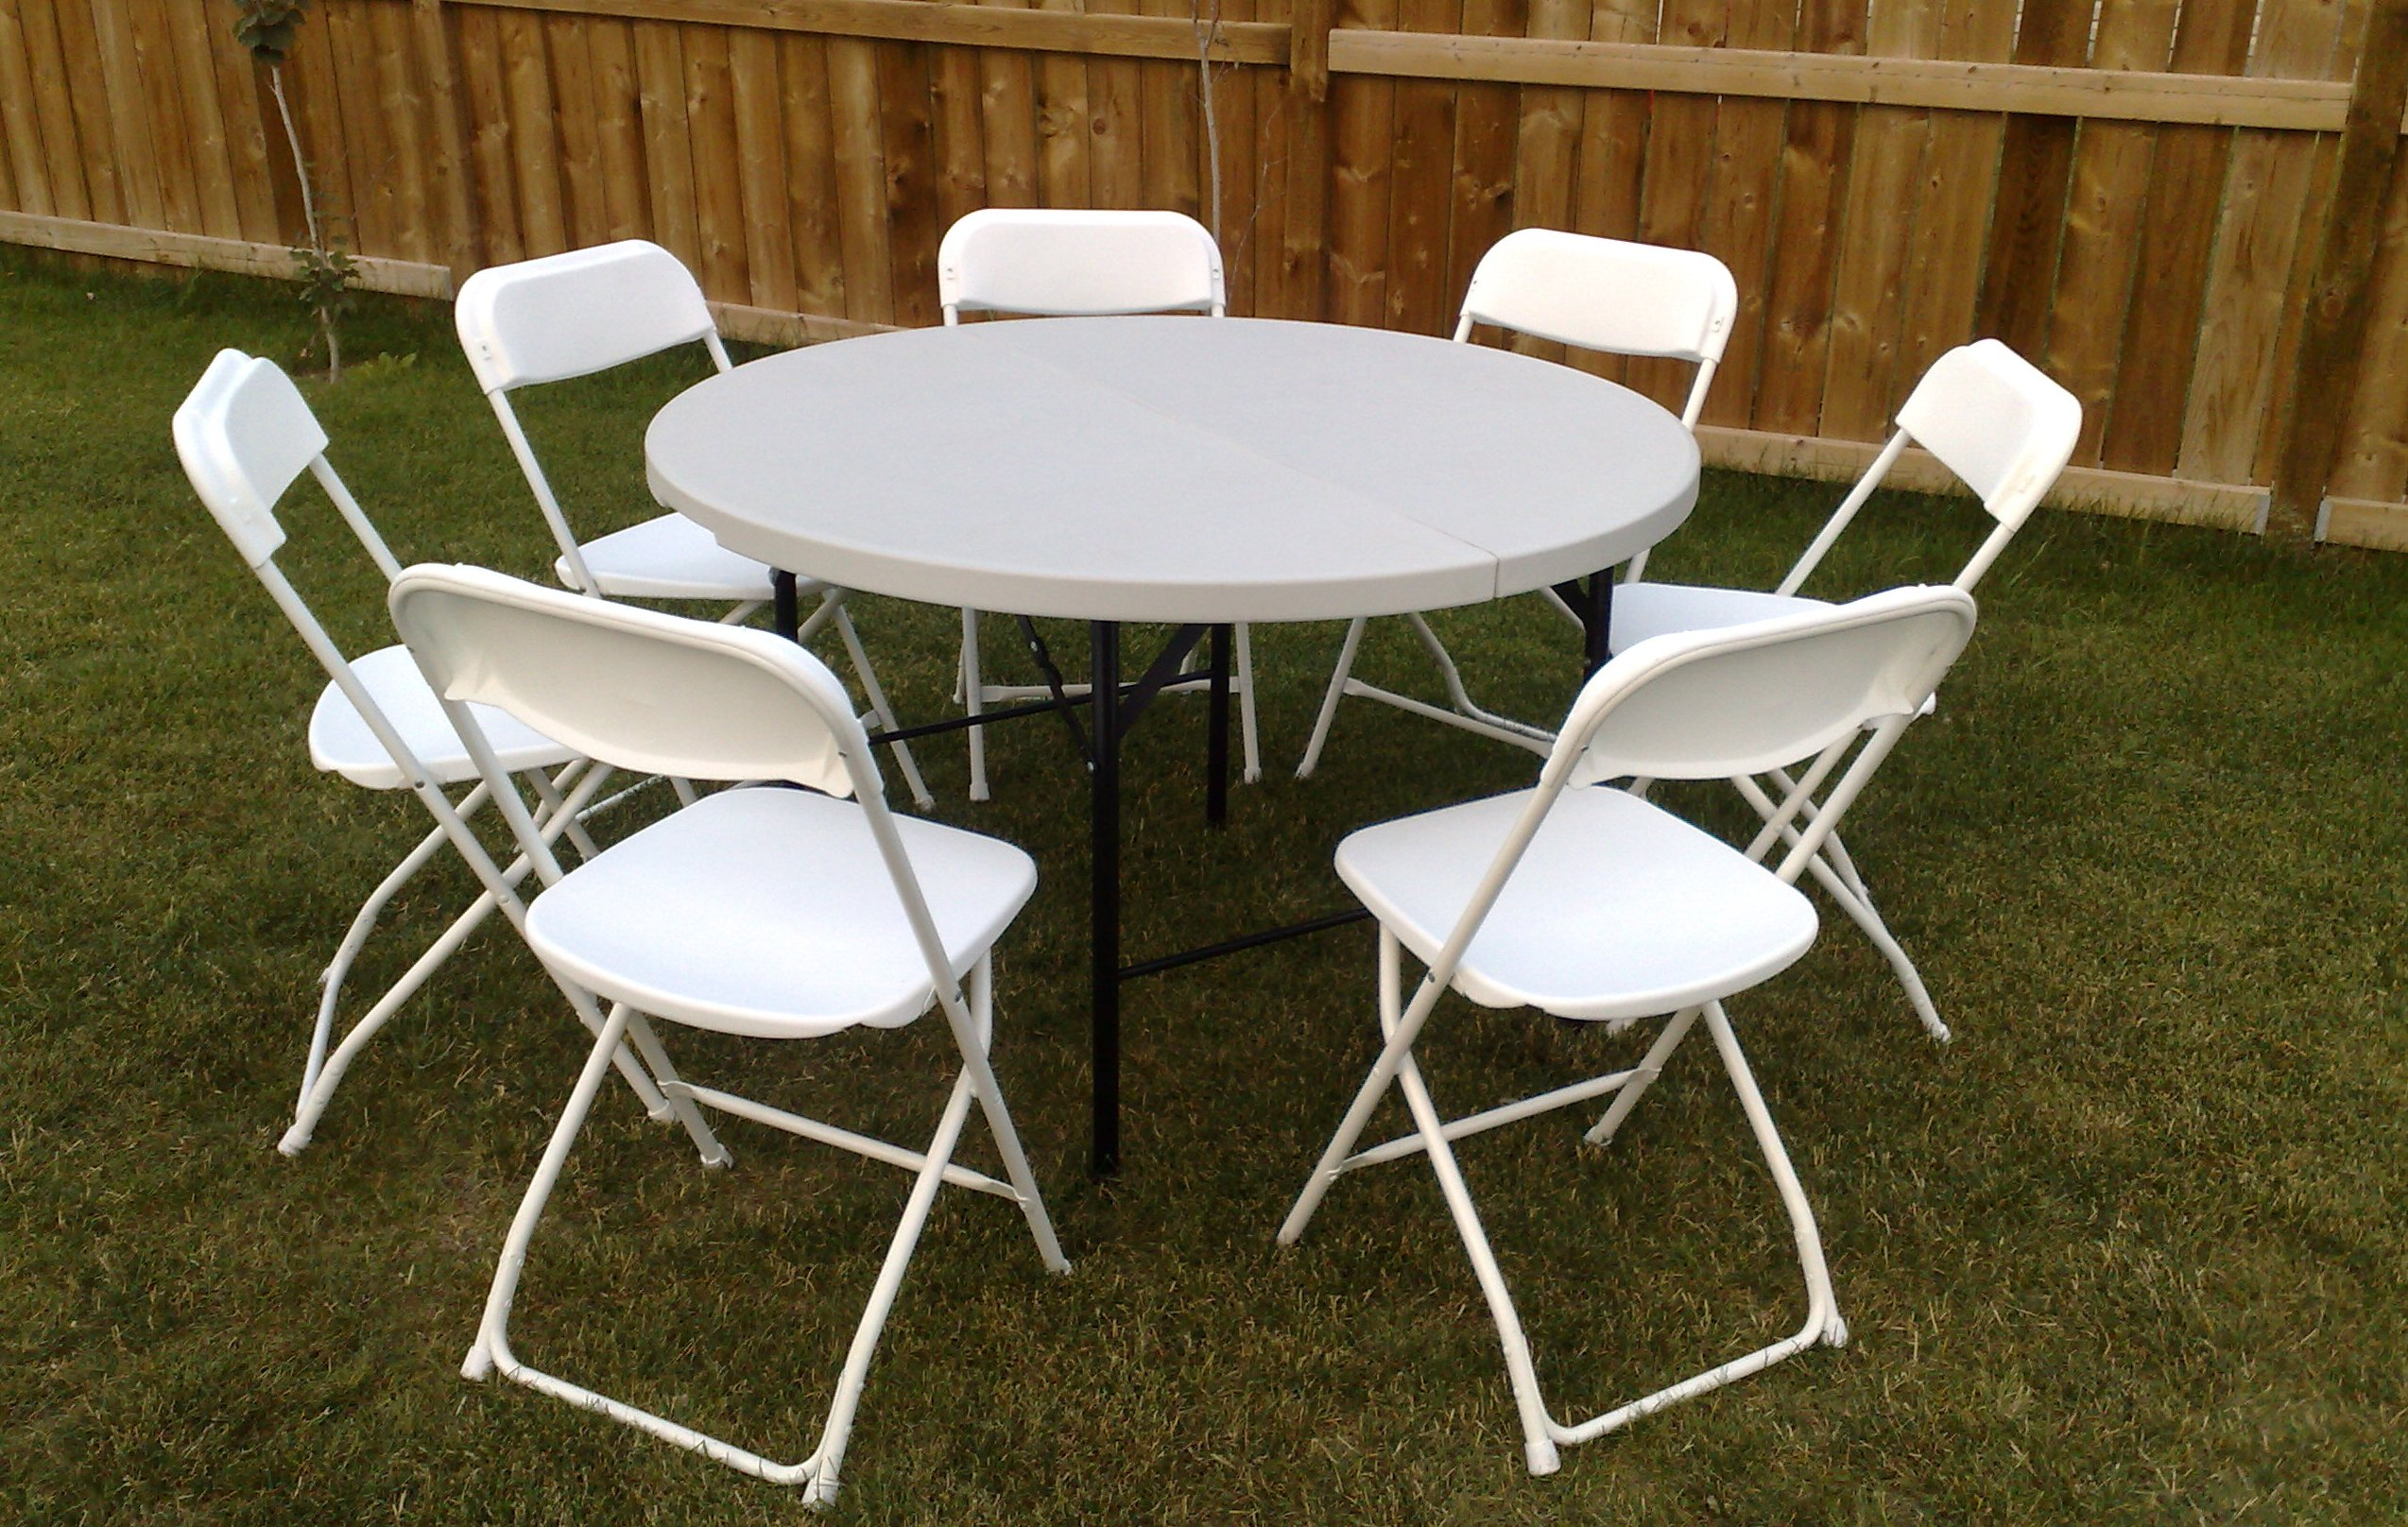 Elegant chair and table rentals for Chair table rentals